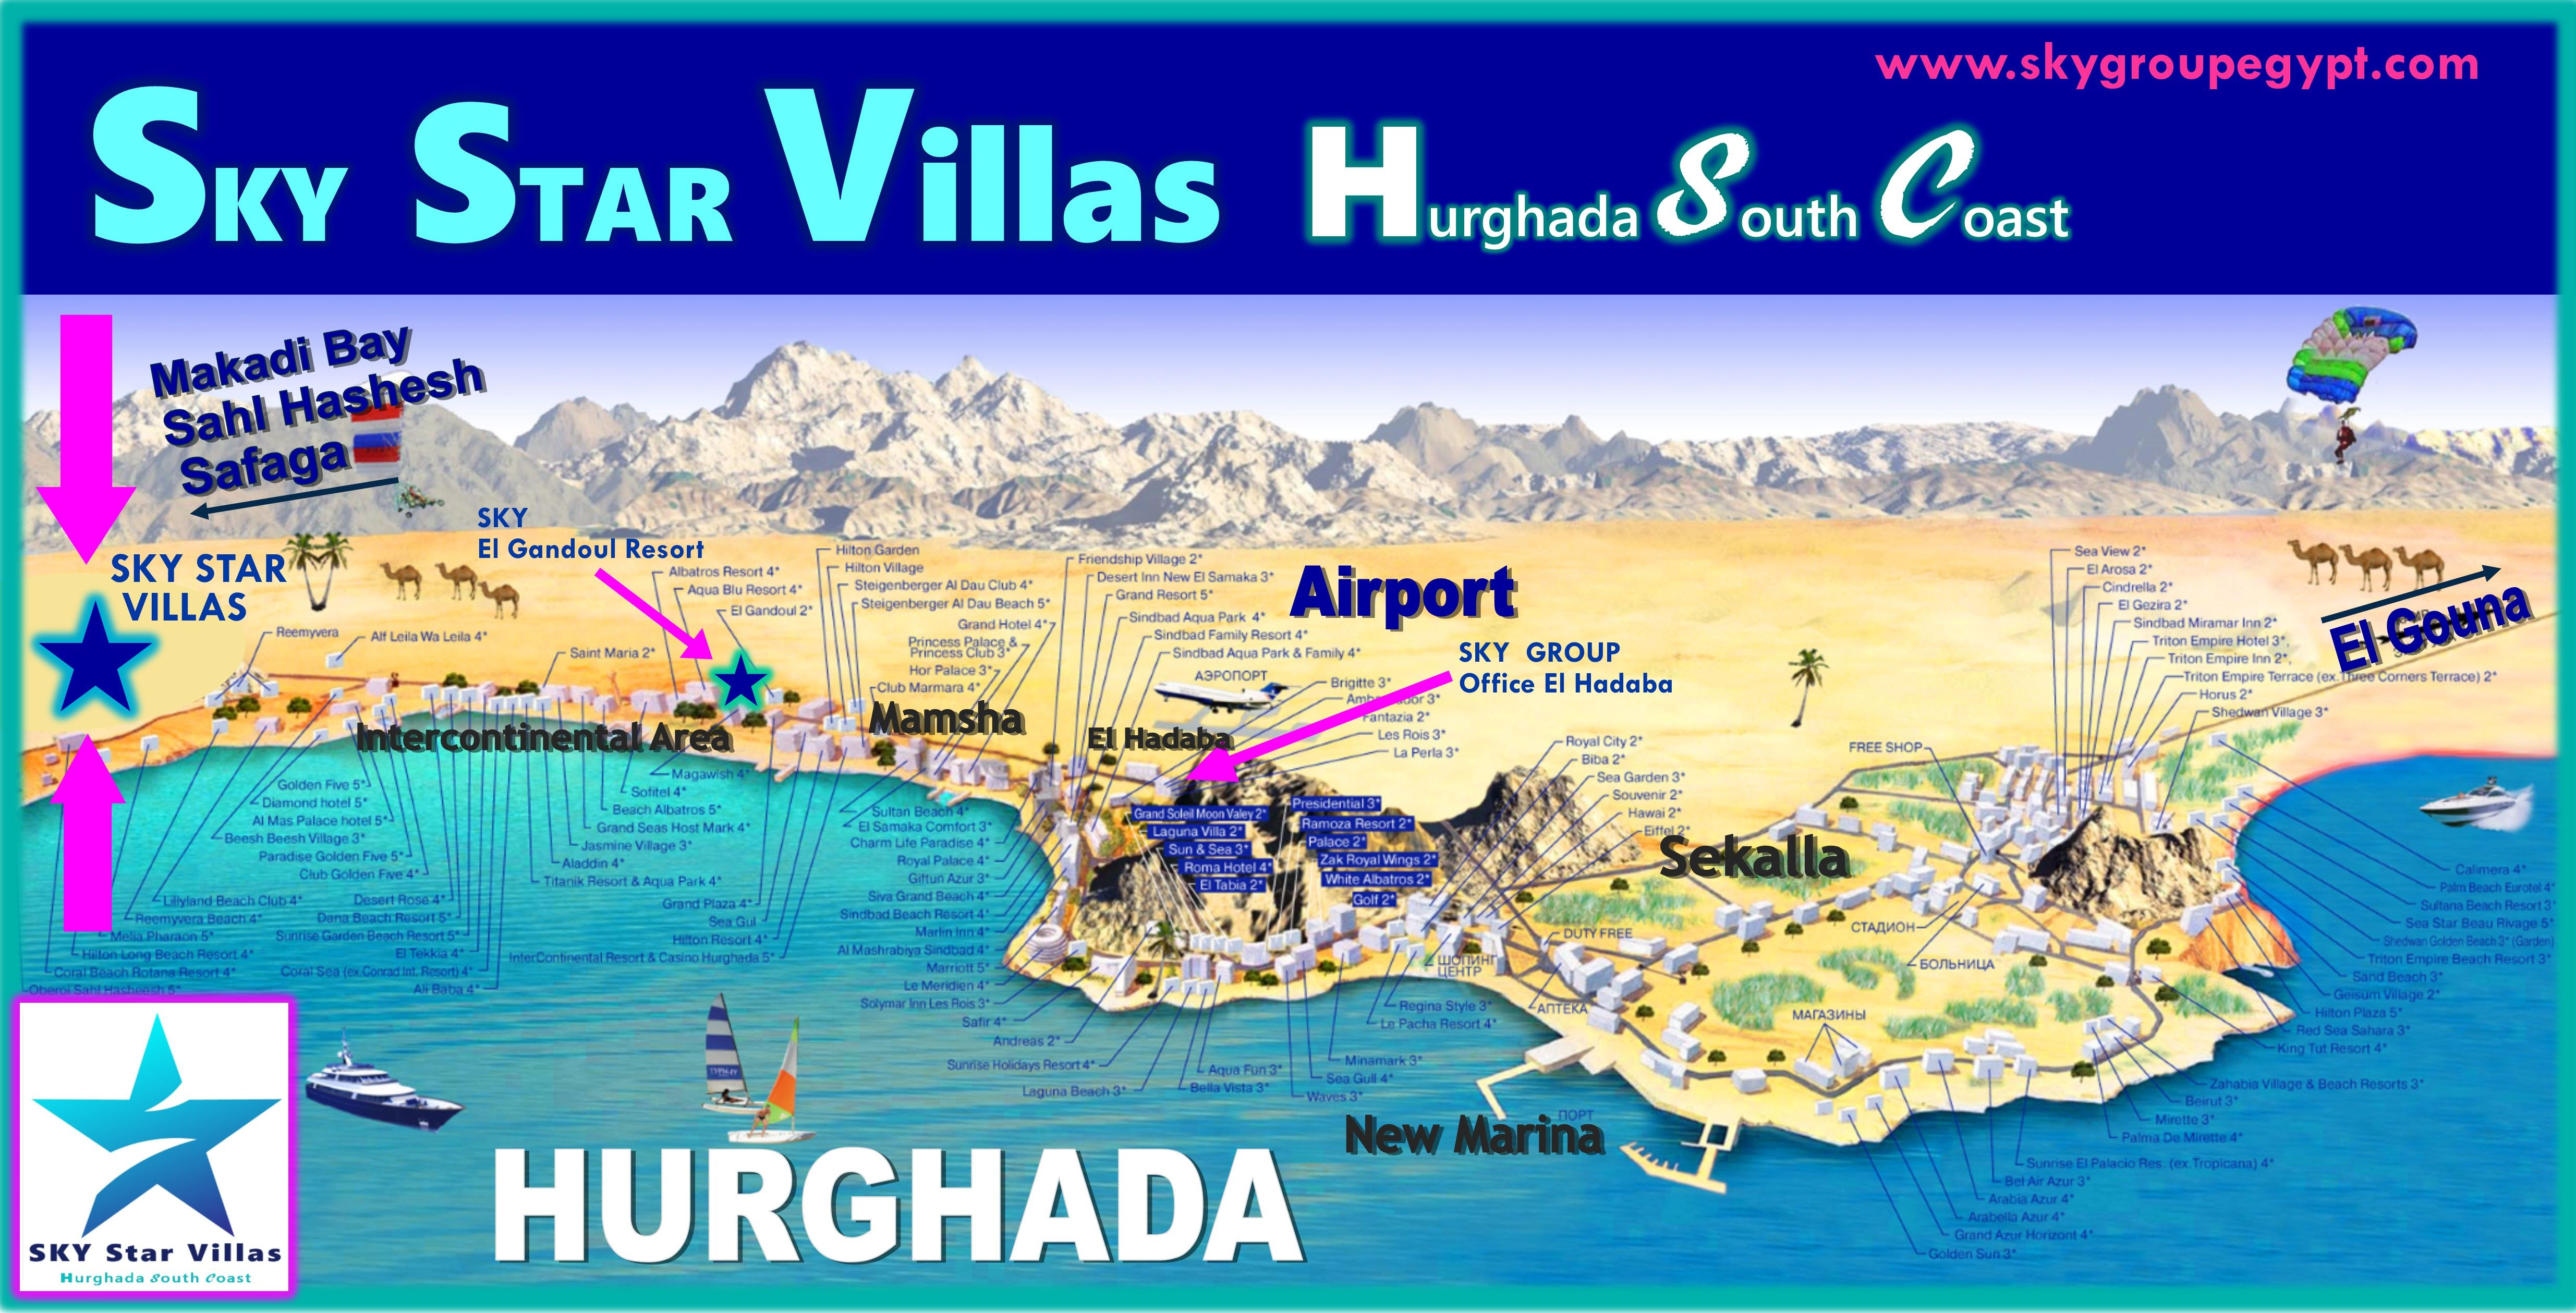 Great Map with locations and hotels in Hurghada, Egypt